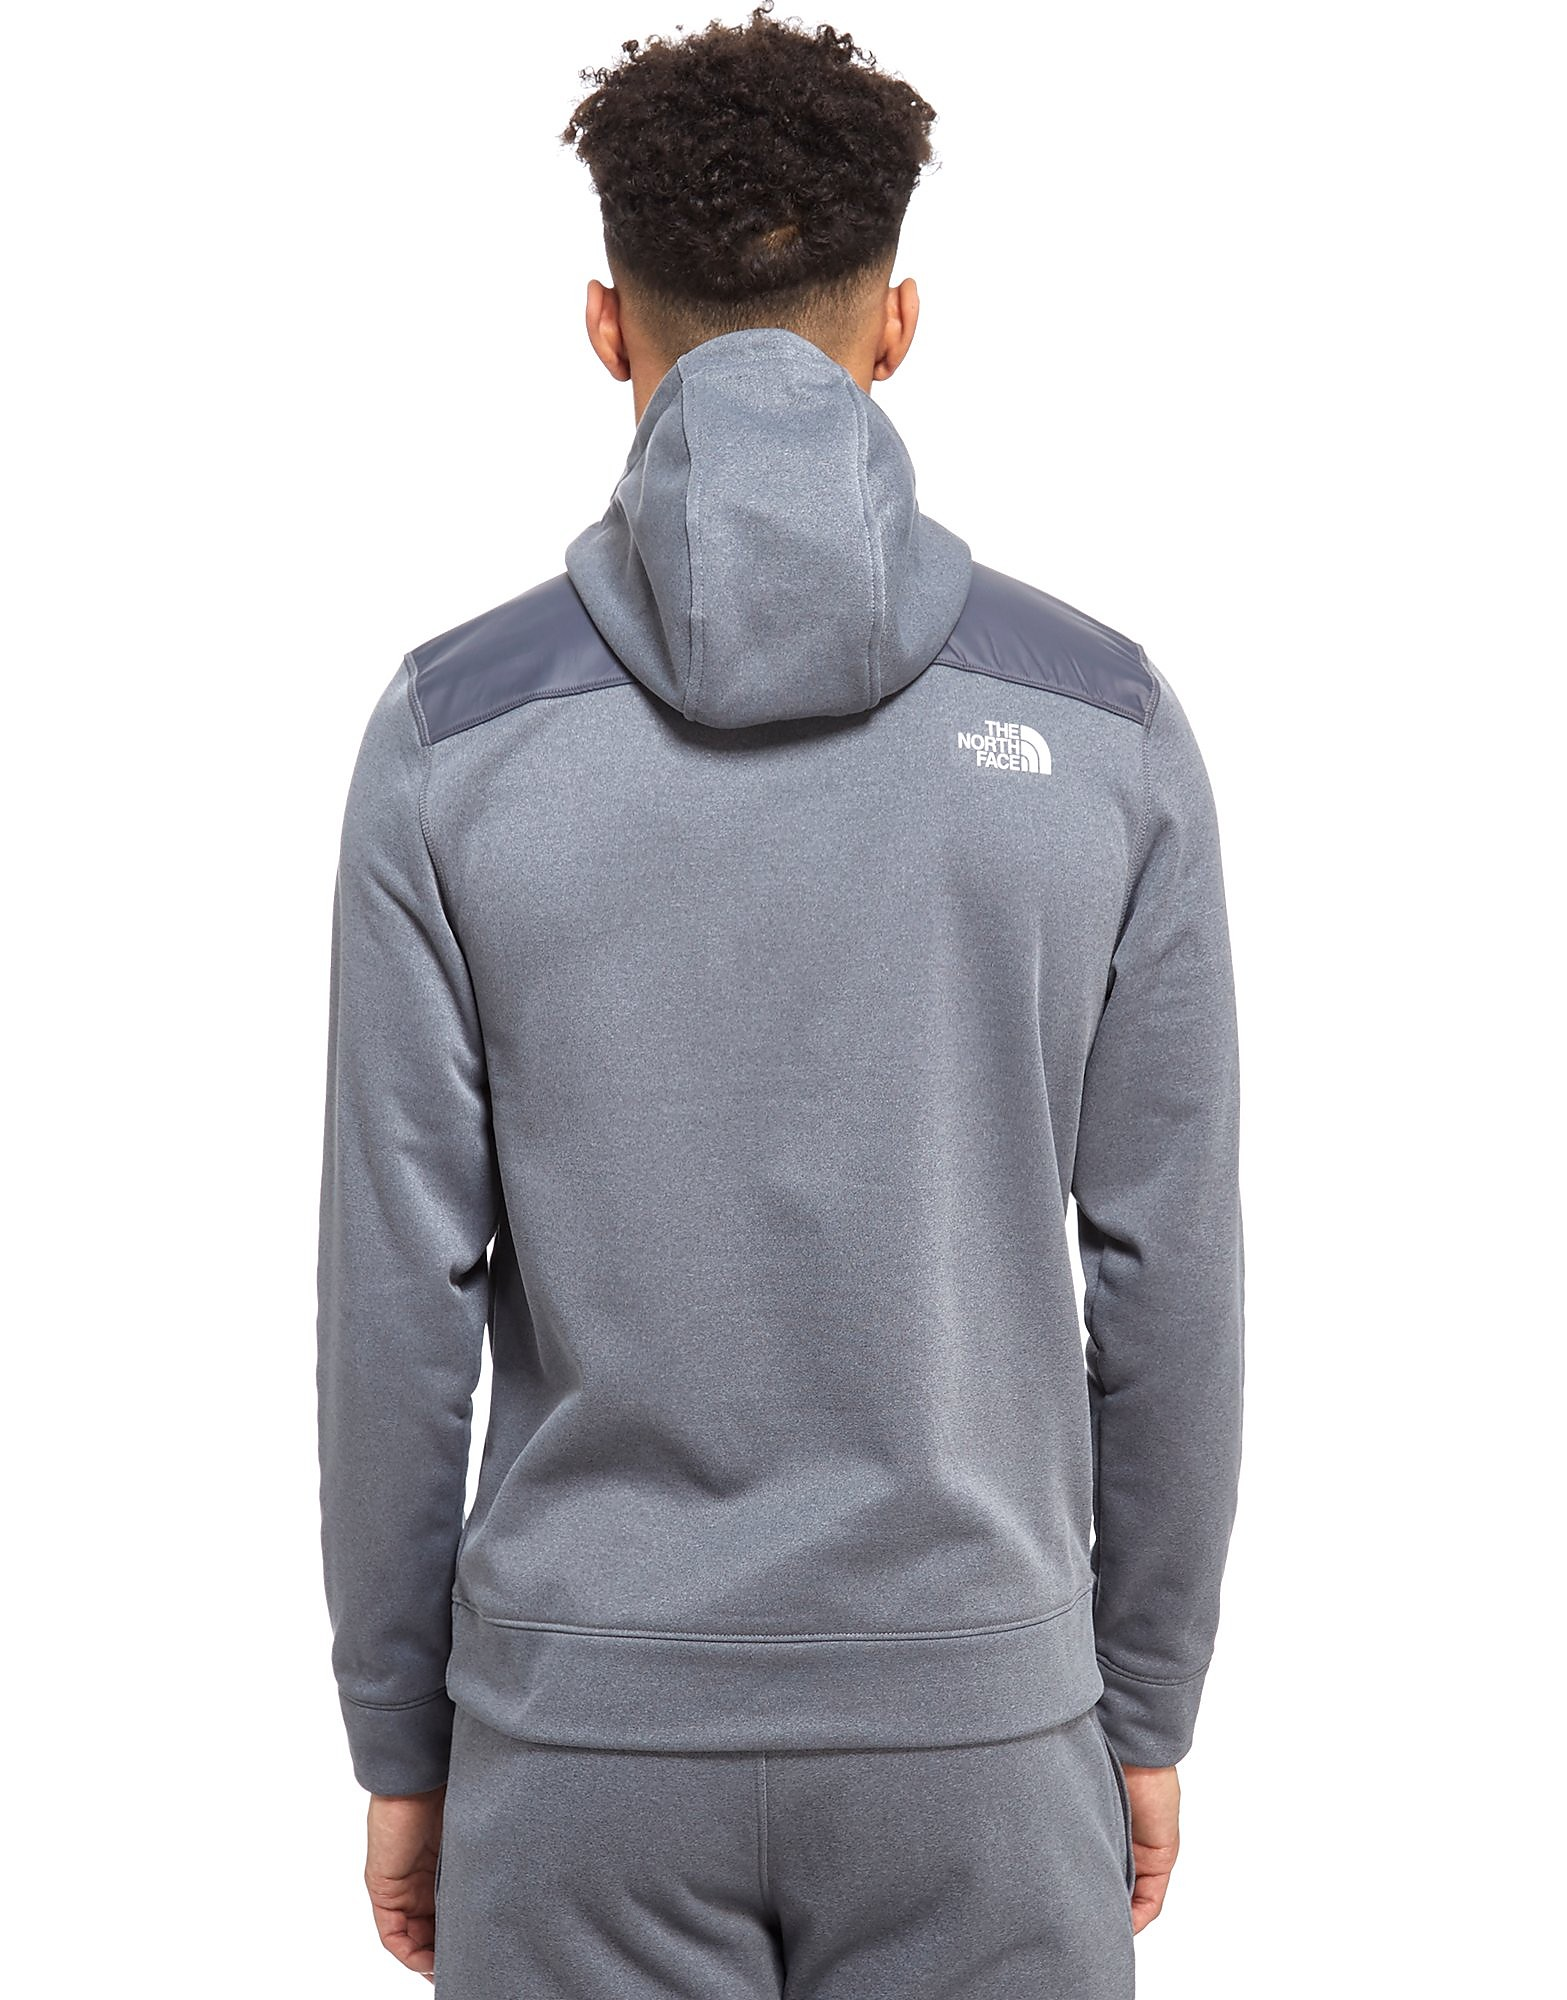 The North Face Mittellegi 1/4 Zip Hoody